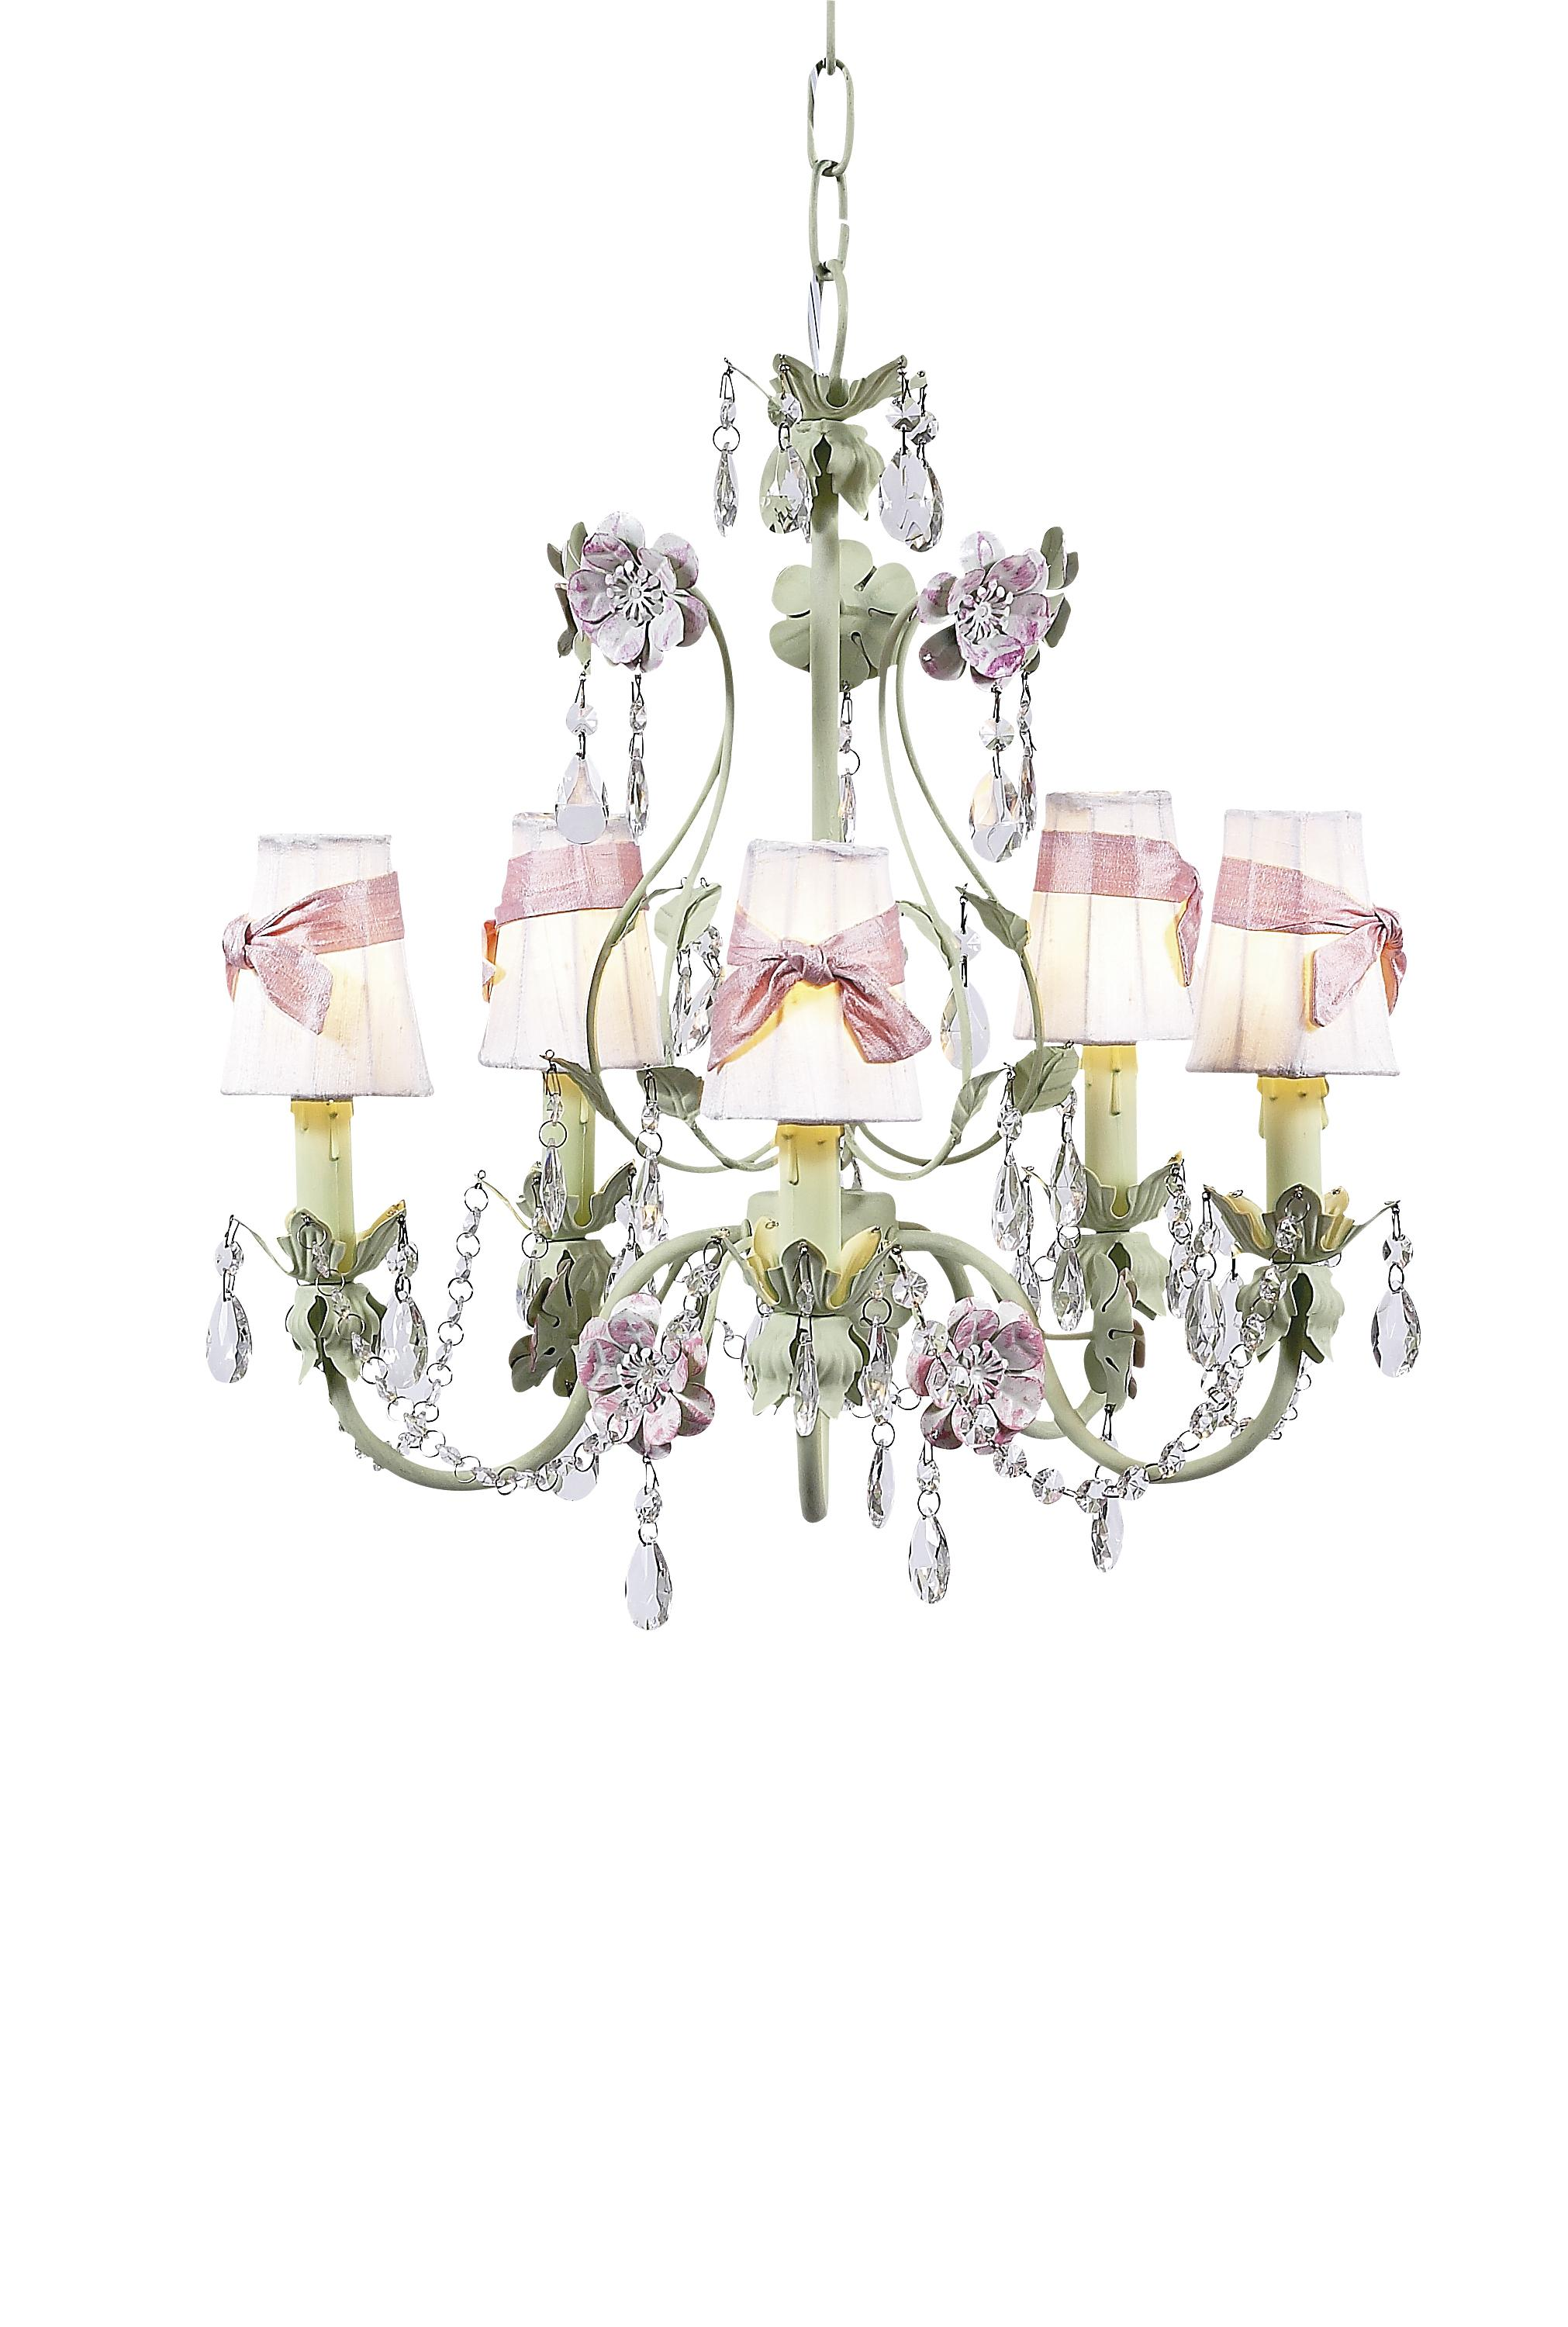 Plain chandelier shades wsash on flower garden chandelier white jubilee collection plain chandelier shades wsash on flower garden chandelier white pink aloadofball Image collections